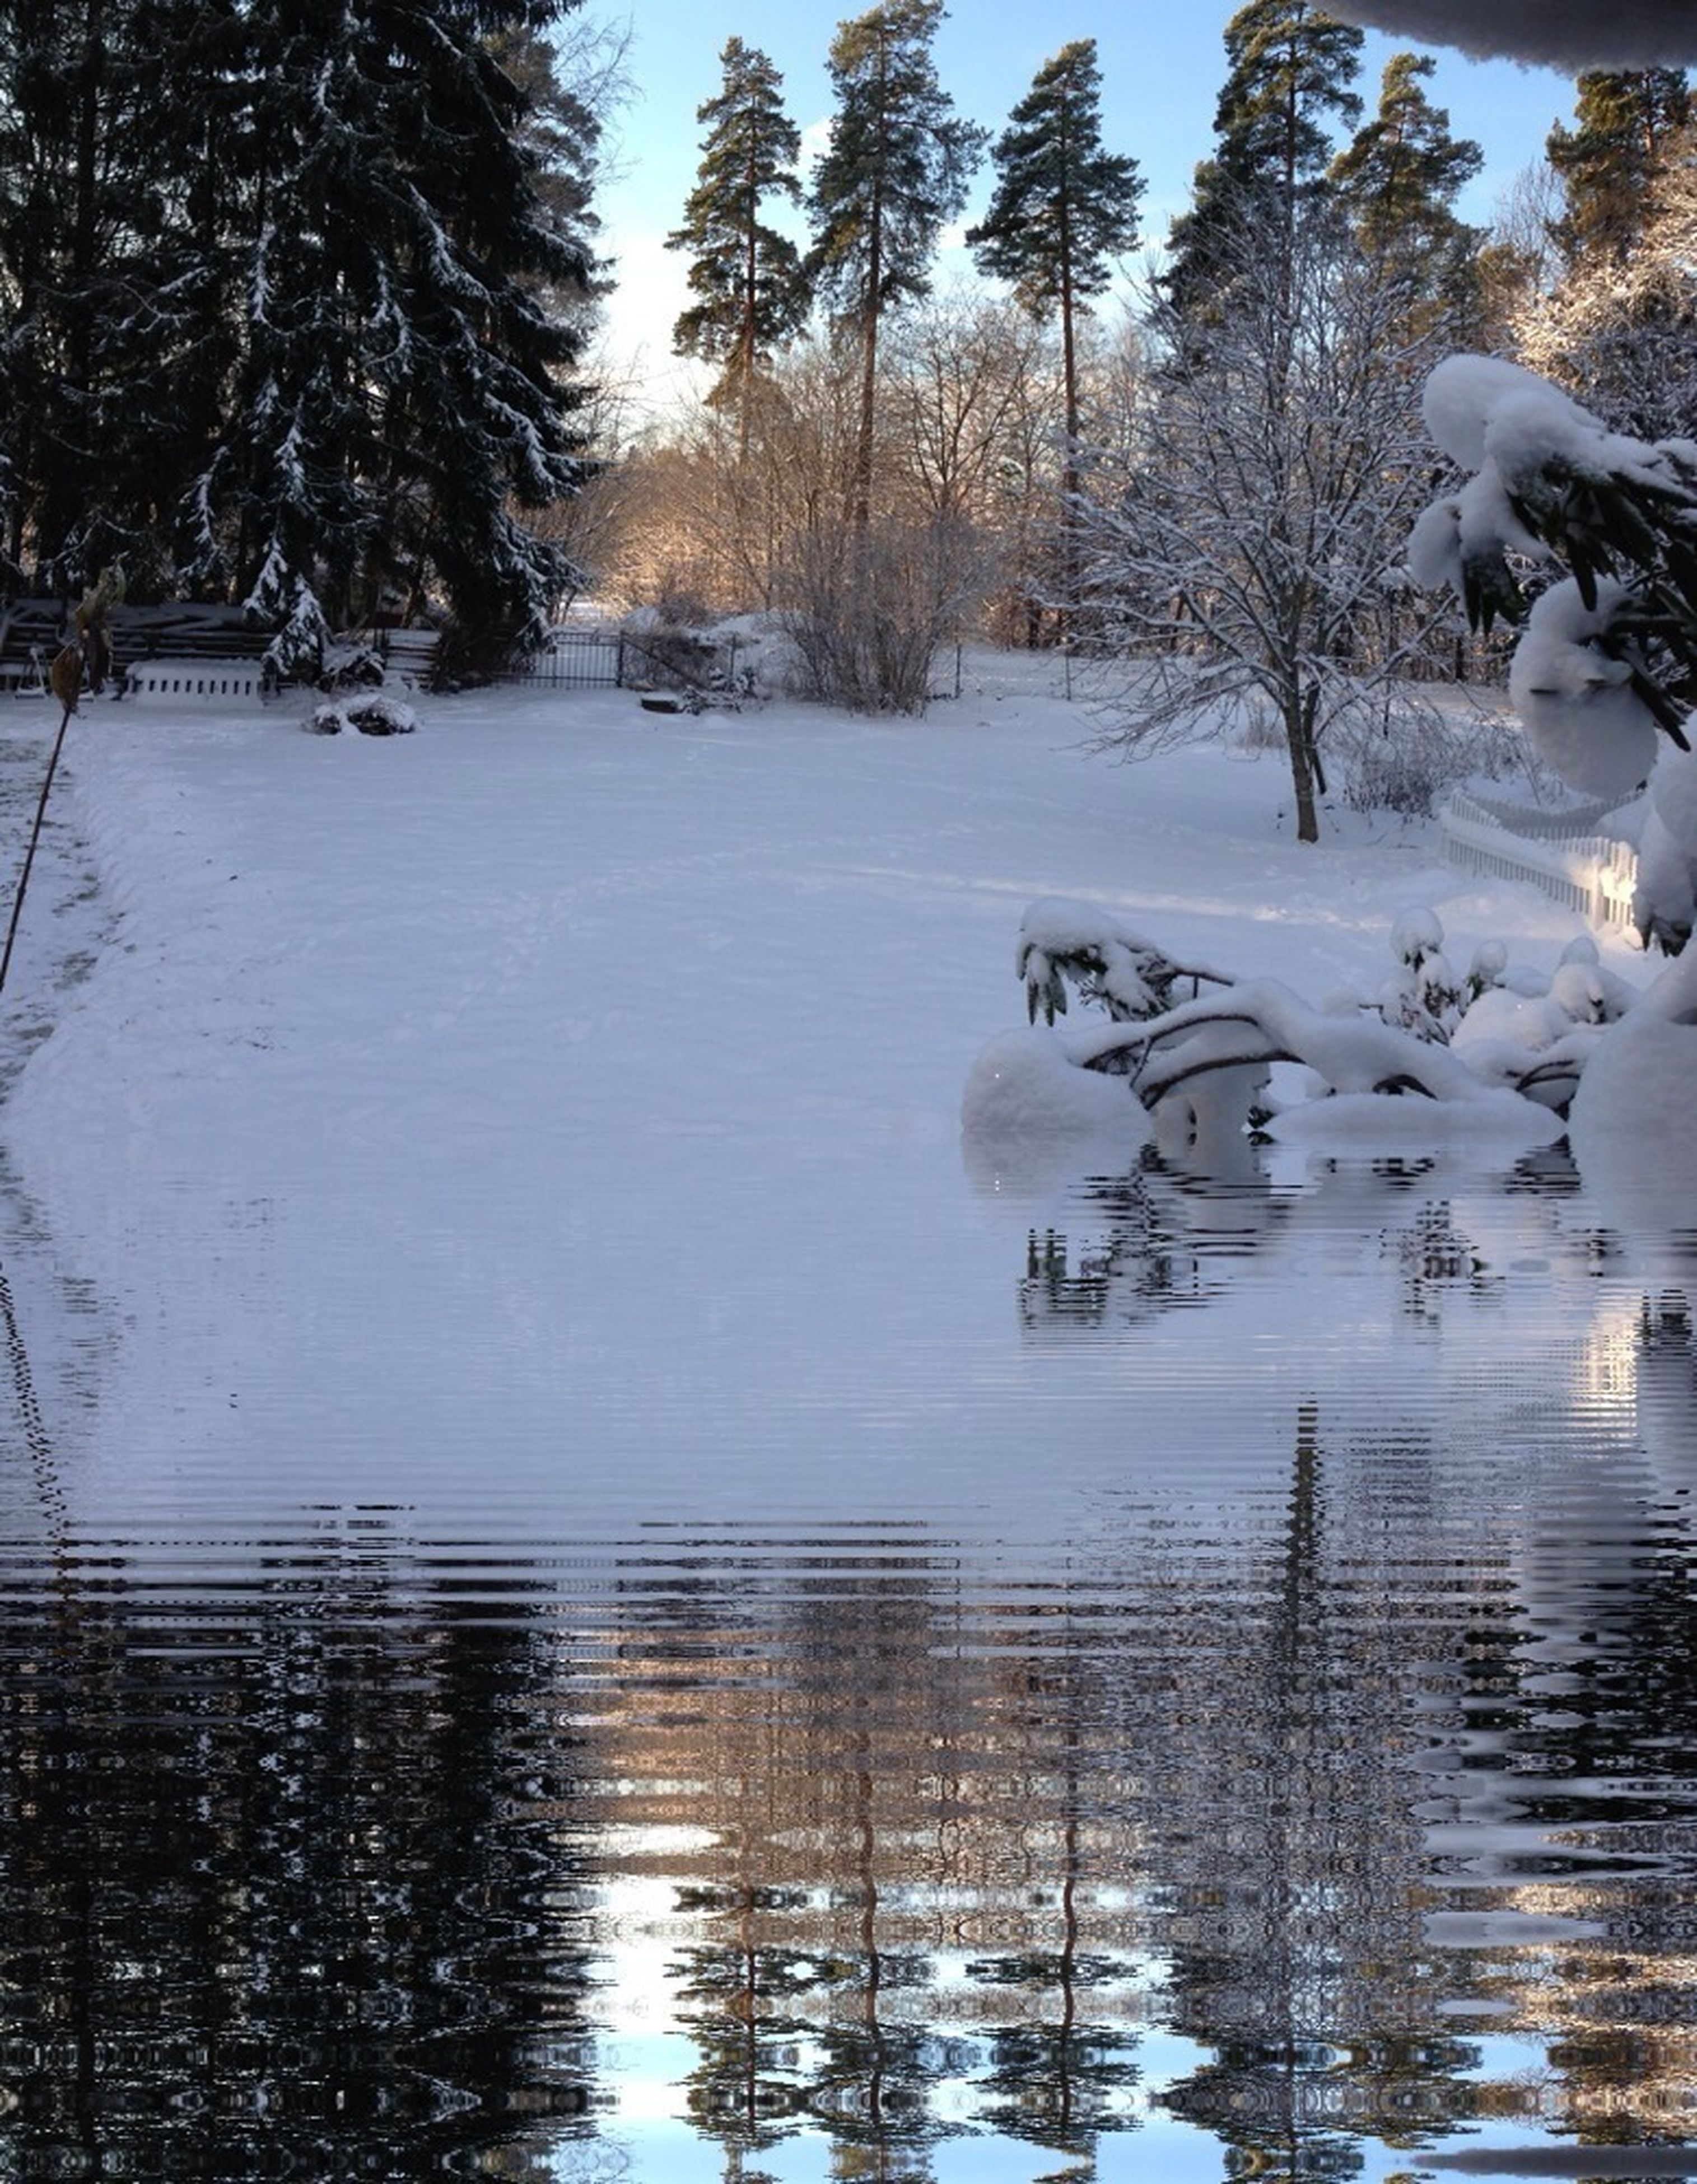 water, winter, snow, cold temperature, tree, lake, reflection, tranquility, frozen, nature, tranquil scene, season, beauty in nature, waterfront, scenics, day, bare tree, white color, weather, outdoors